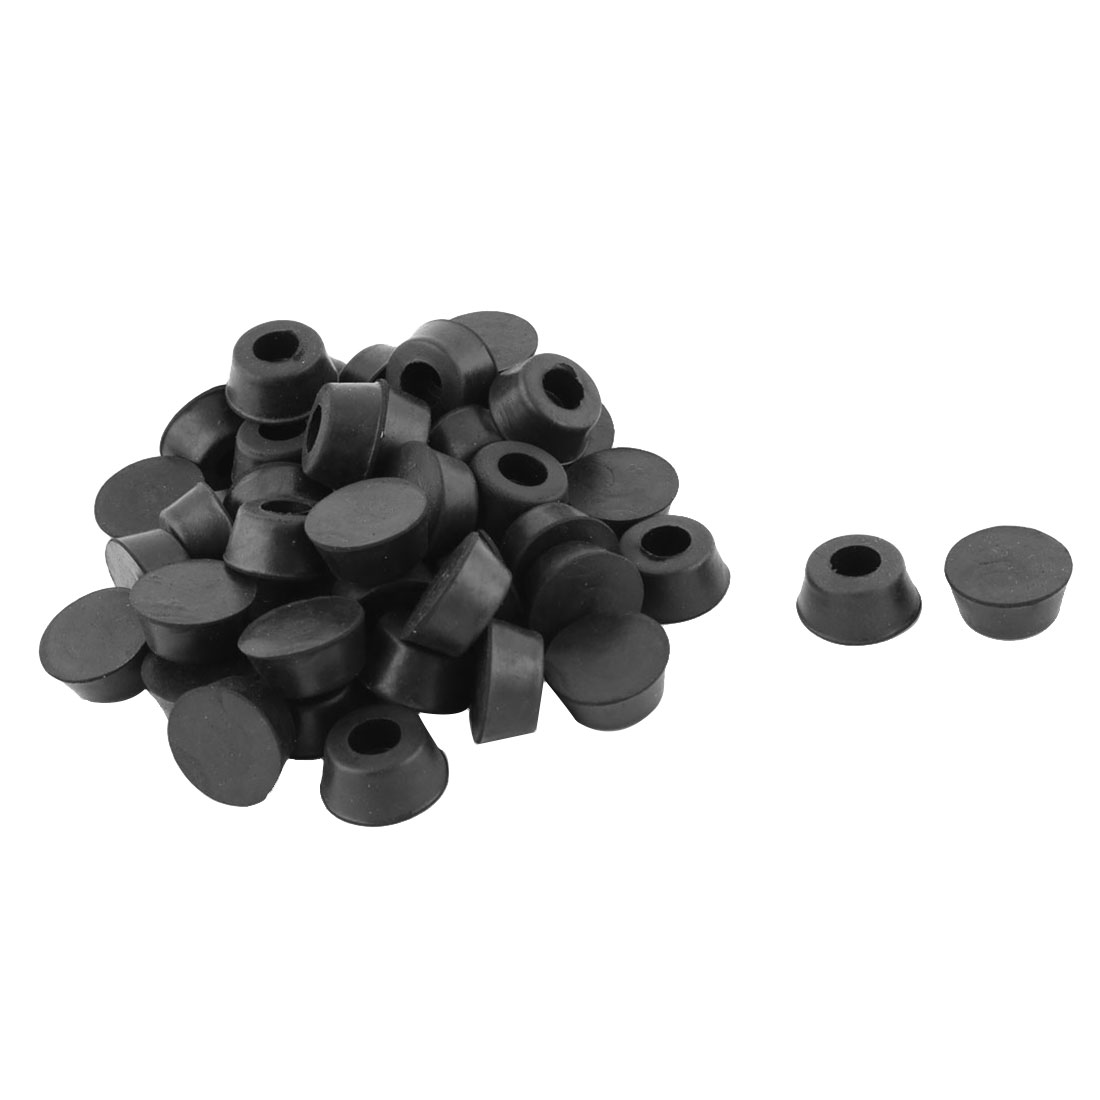 Household Rubber Furniture Table Leg Tip Foot Protector Pad Cover Black 45pcs